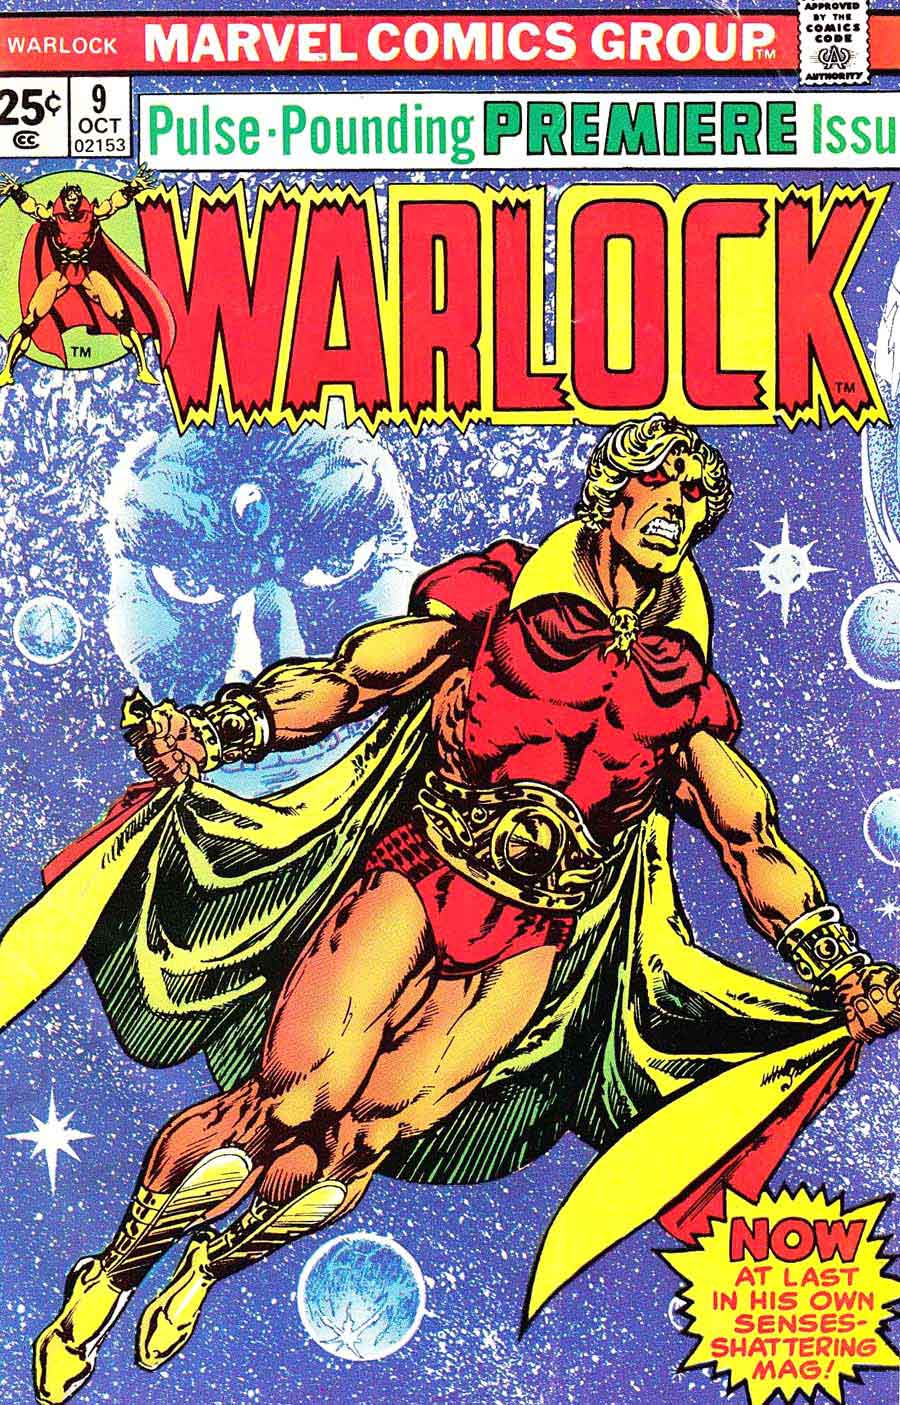 Warlock v1 #9 marvel 1970s bronze age comic book cover art by Jim Starlin